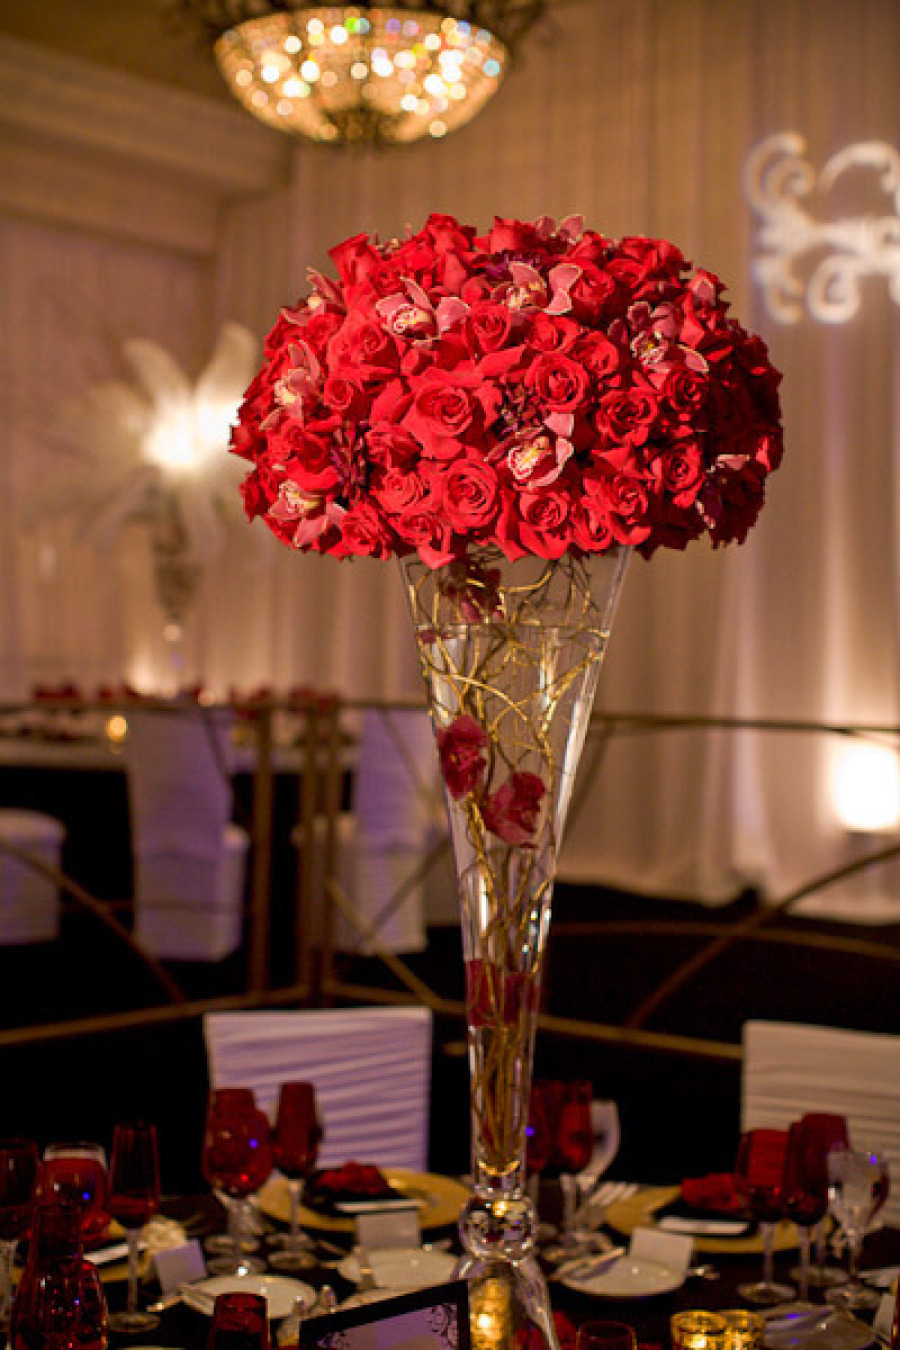 Red rose wedding topiary centerpiece for vintage glam